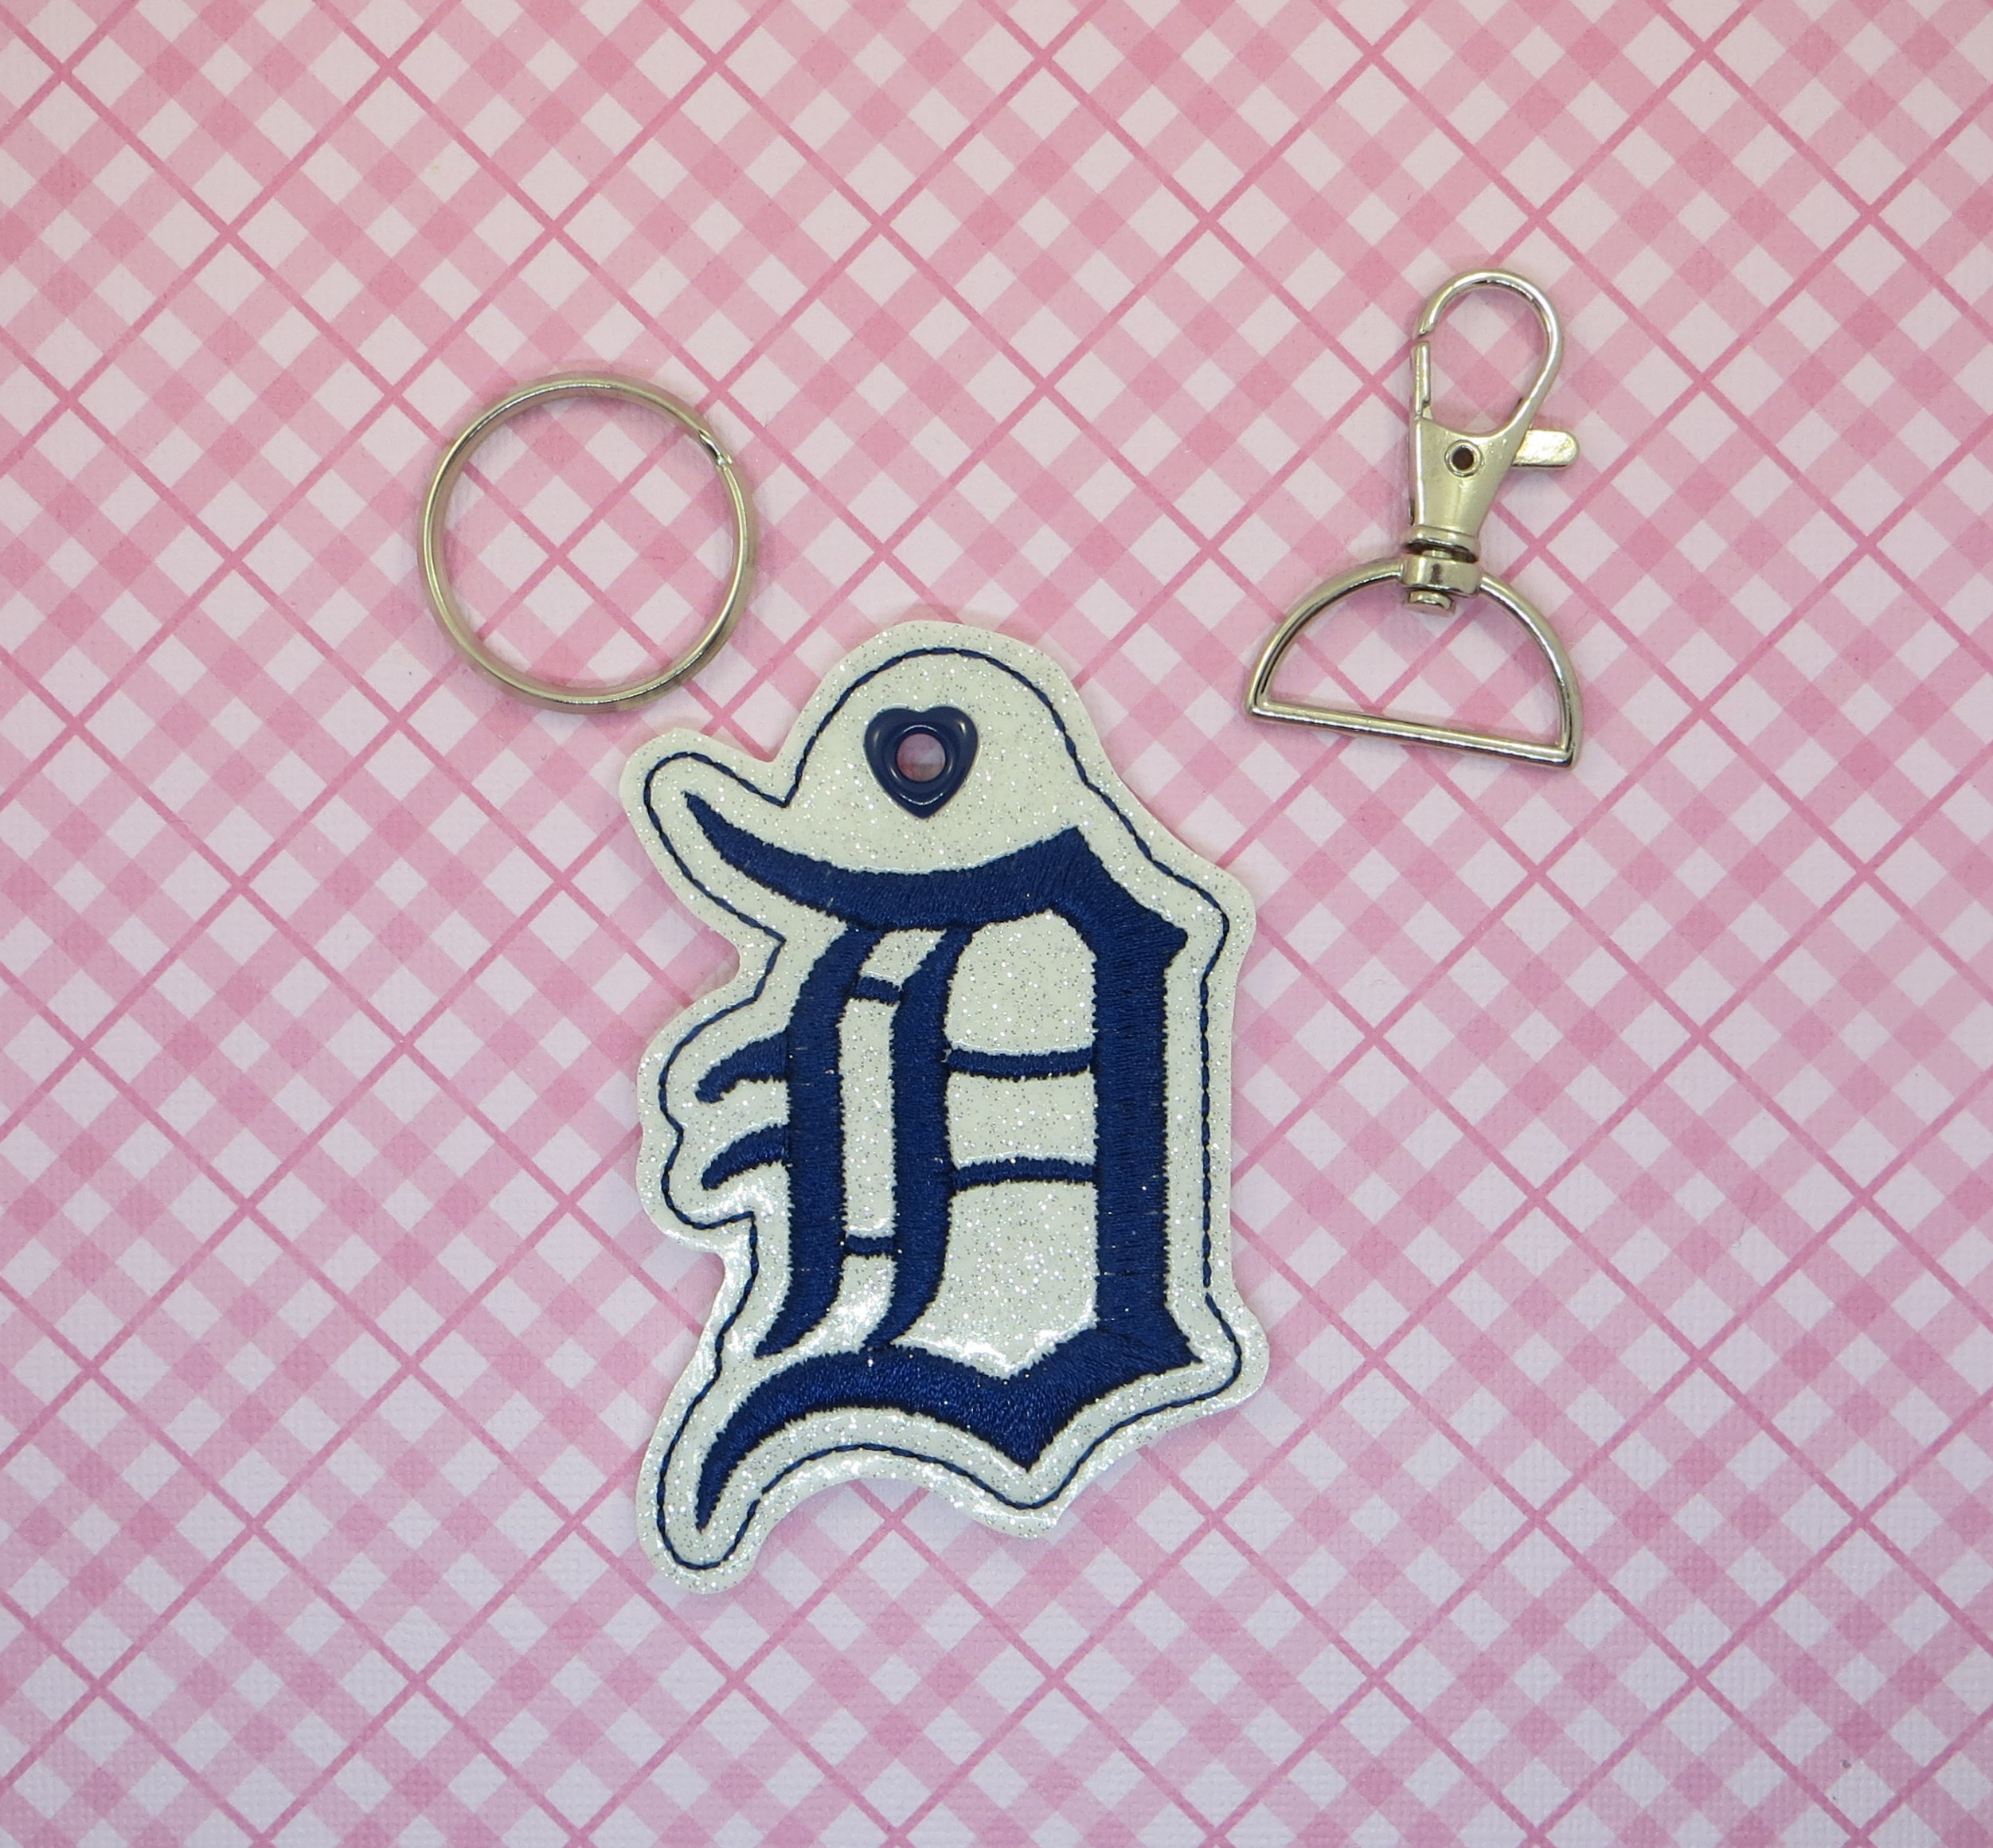 Detroit Tiger Logo Snaptab / Keyfob Embroidery Design